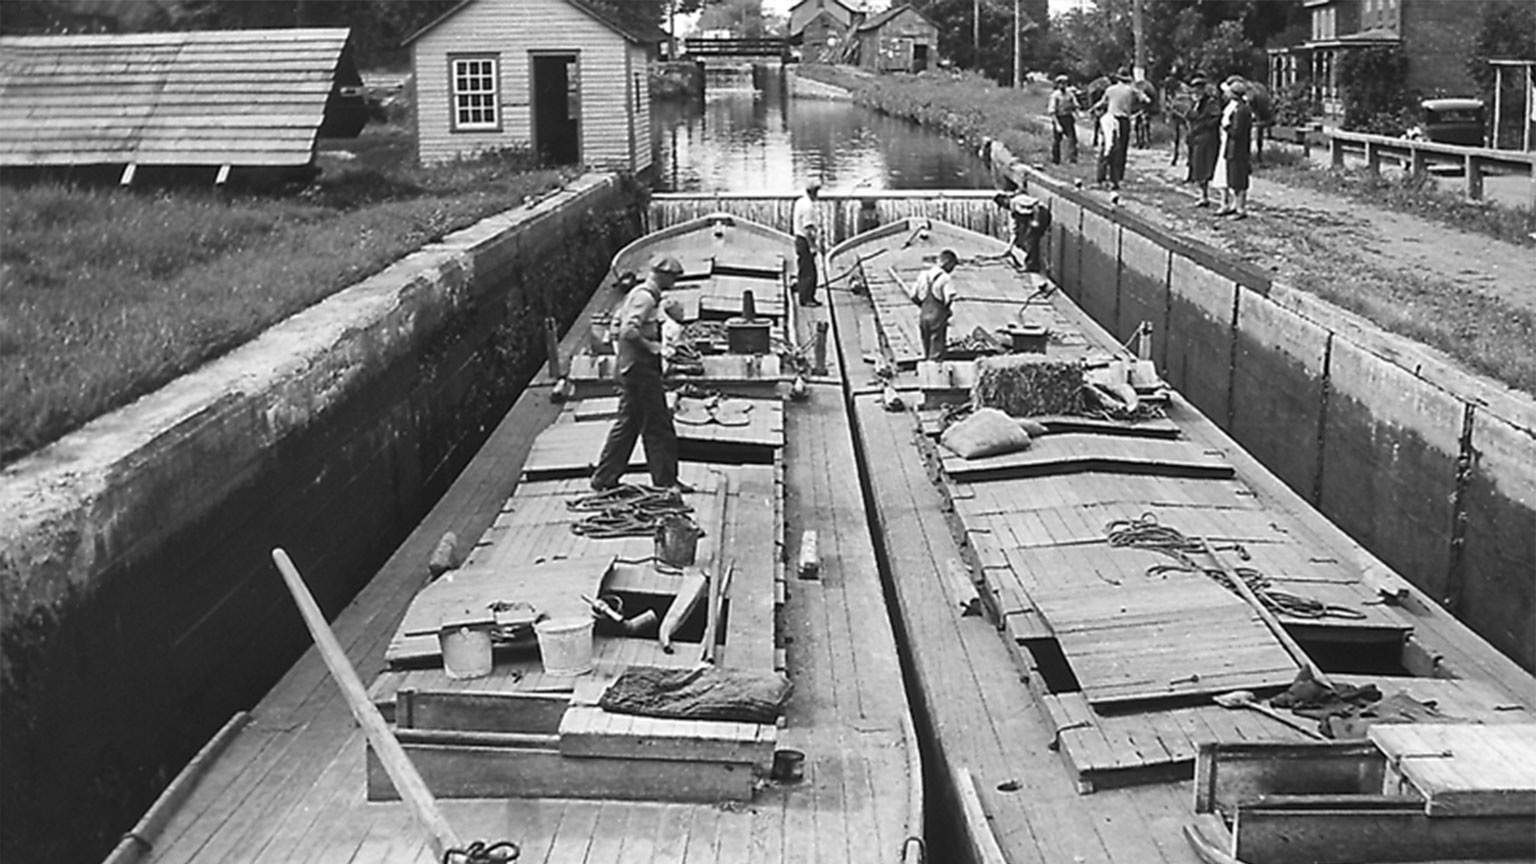 See how close the boats are to one another in a double lock? Captains had to be very careful as they pulled into the lock so as not to bang into the lock walls or the other boat.